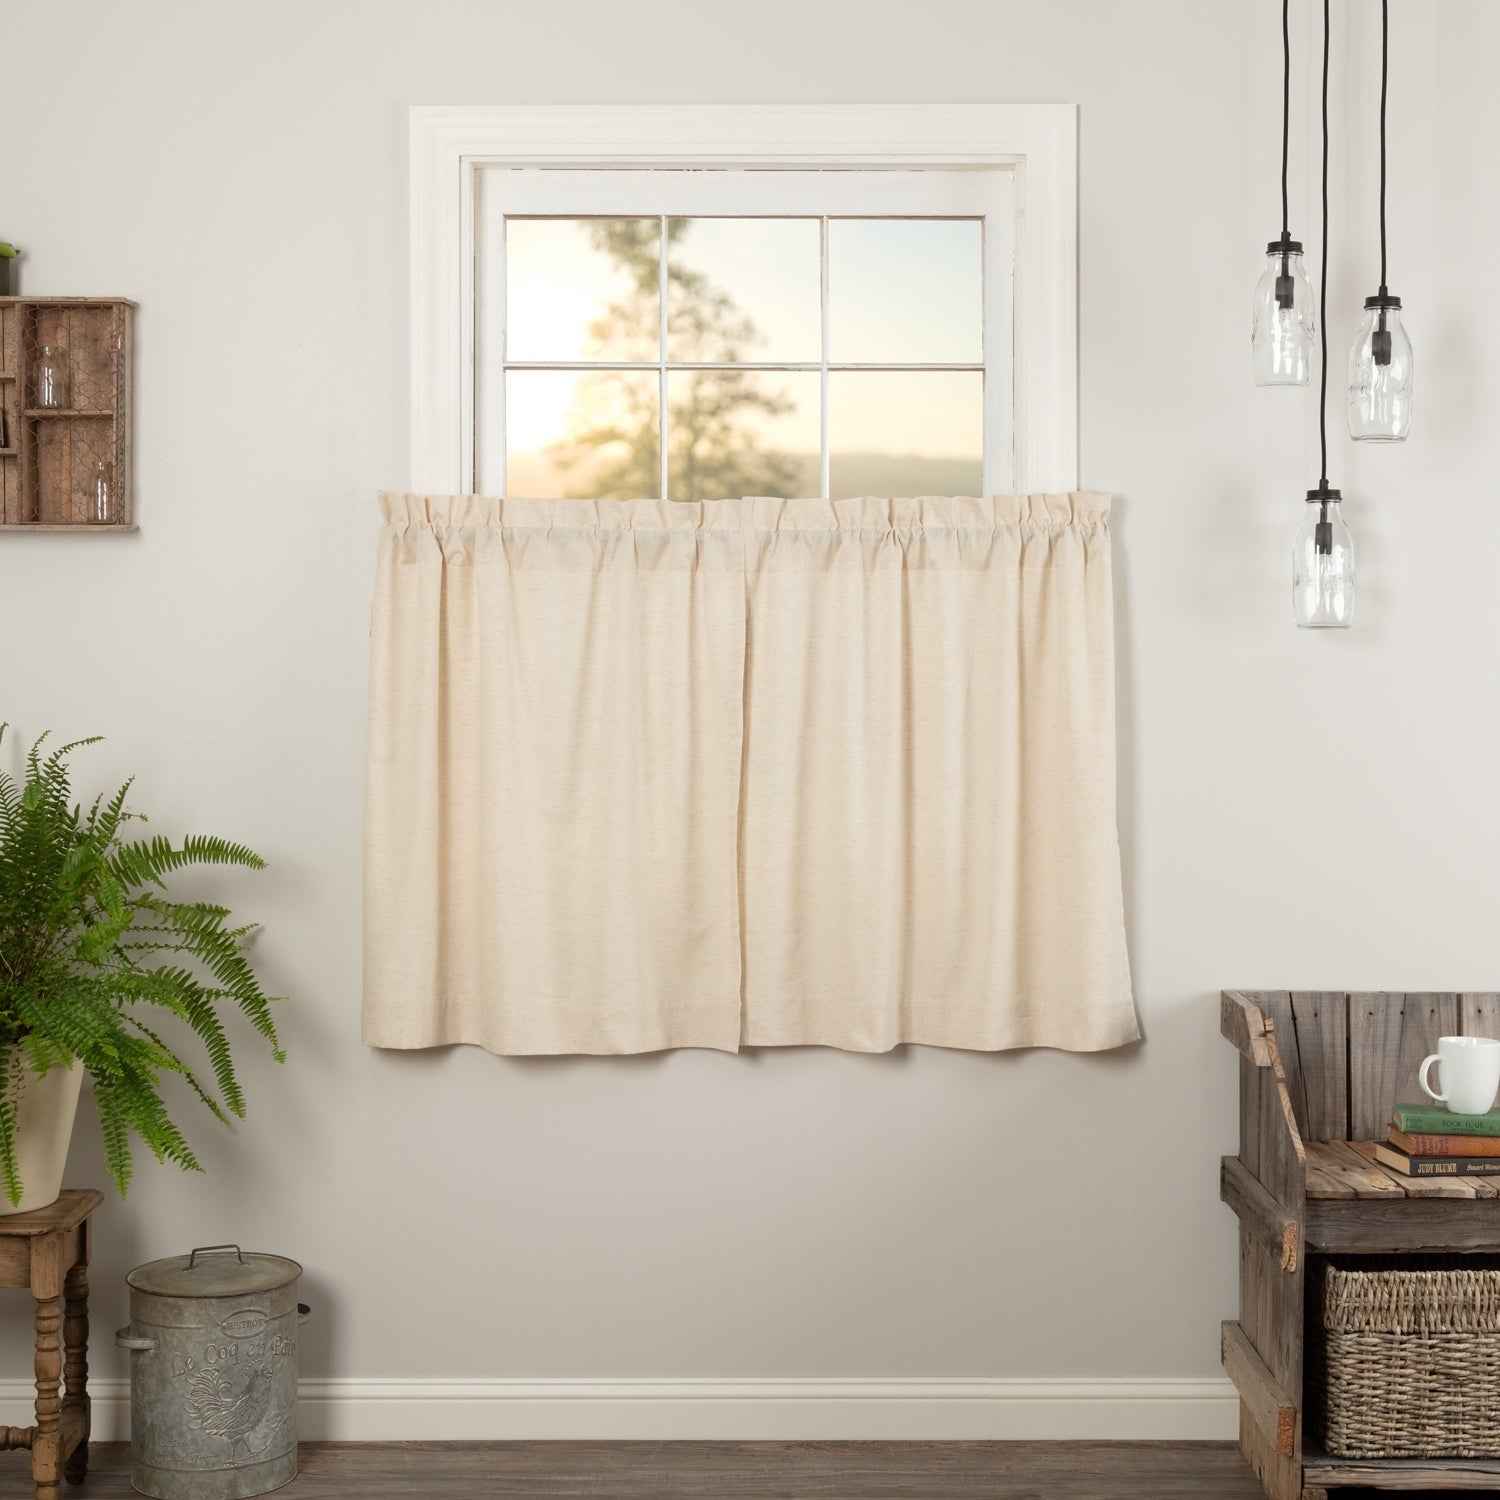 Farmhouse Kitchen Curtains Vhc Simple Life Flax Tier Pair Rod Pocket Cotton Linen Blend Solid Color Flax Within Linen Stripe Rod Pocket Sheer Kitchen Tier Sets (View 17 of 20)